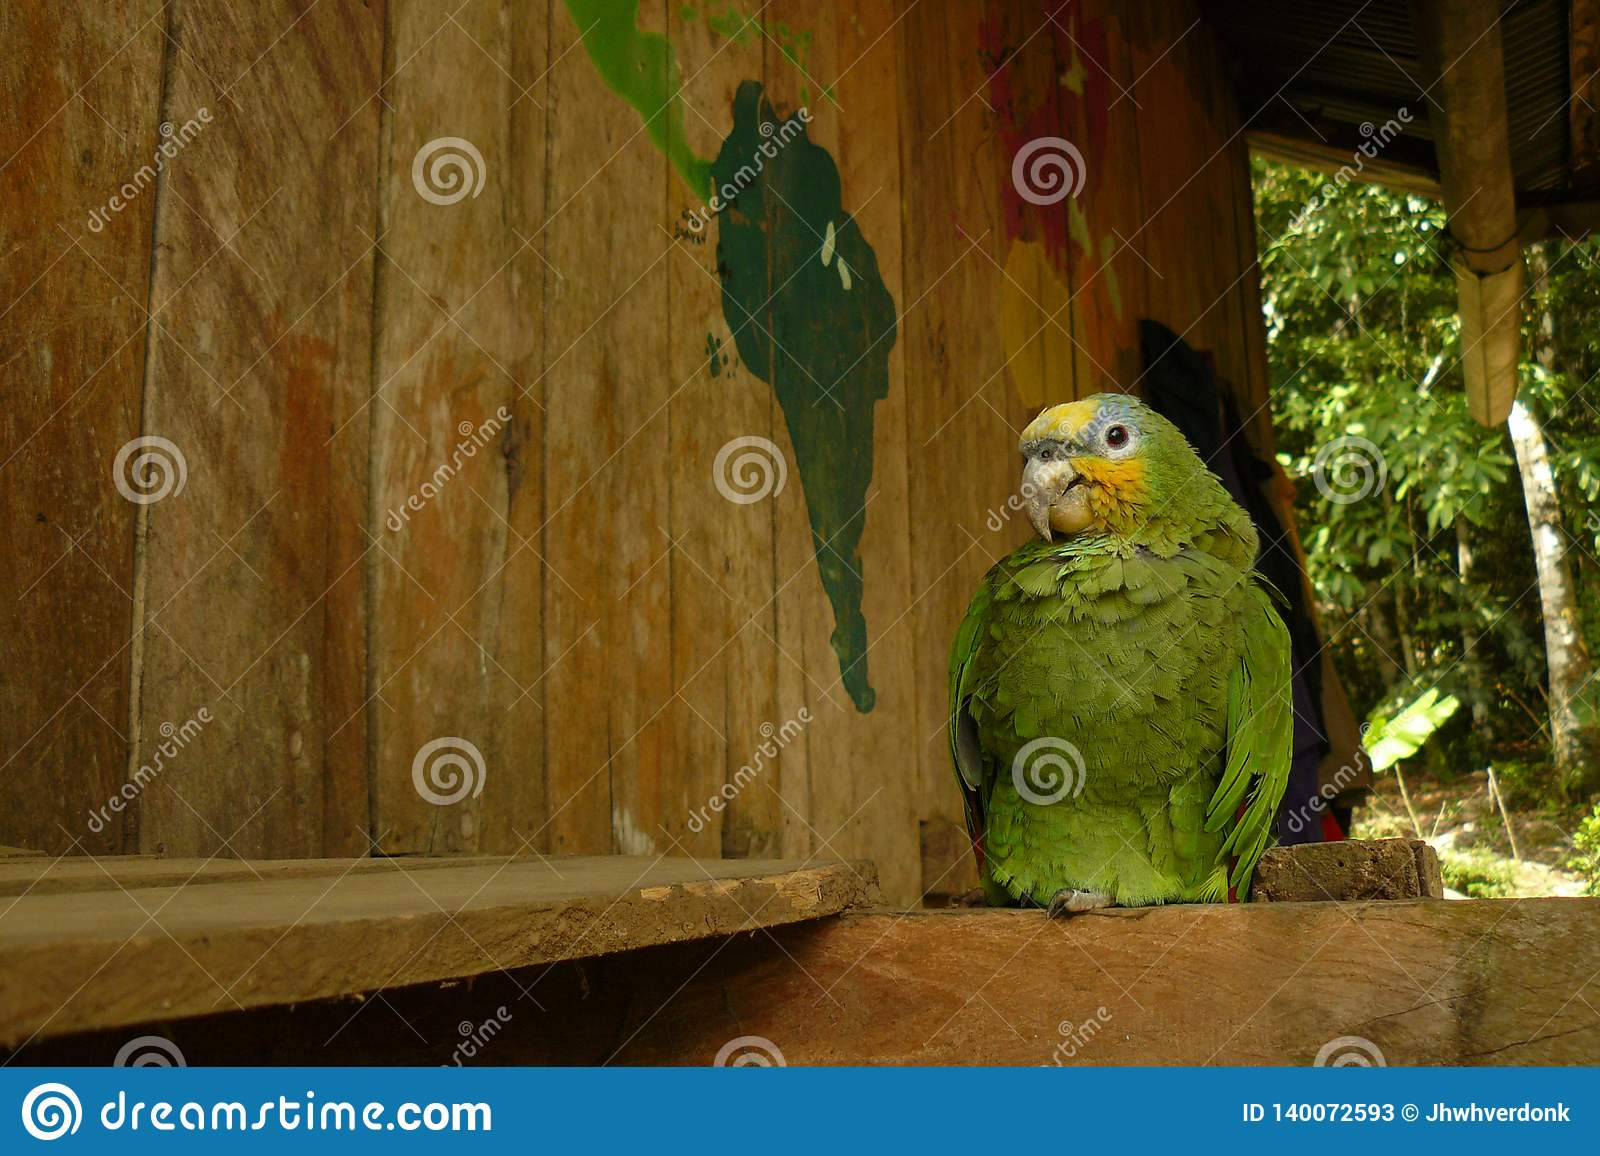 A yellow headed parrot perched down in a wooden house in the jungle next to a map of the world